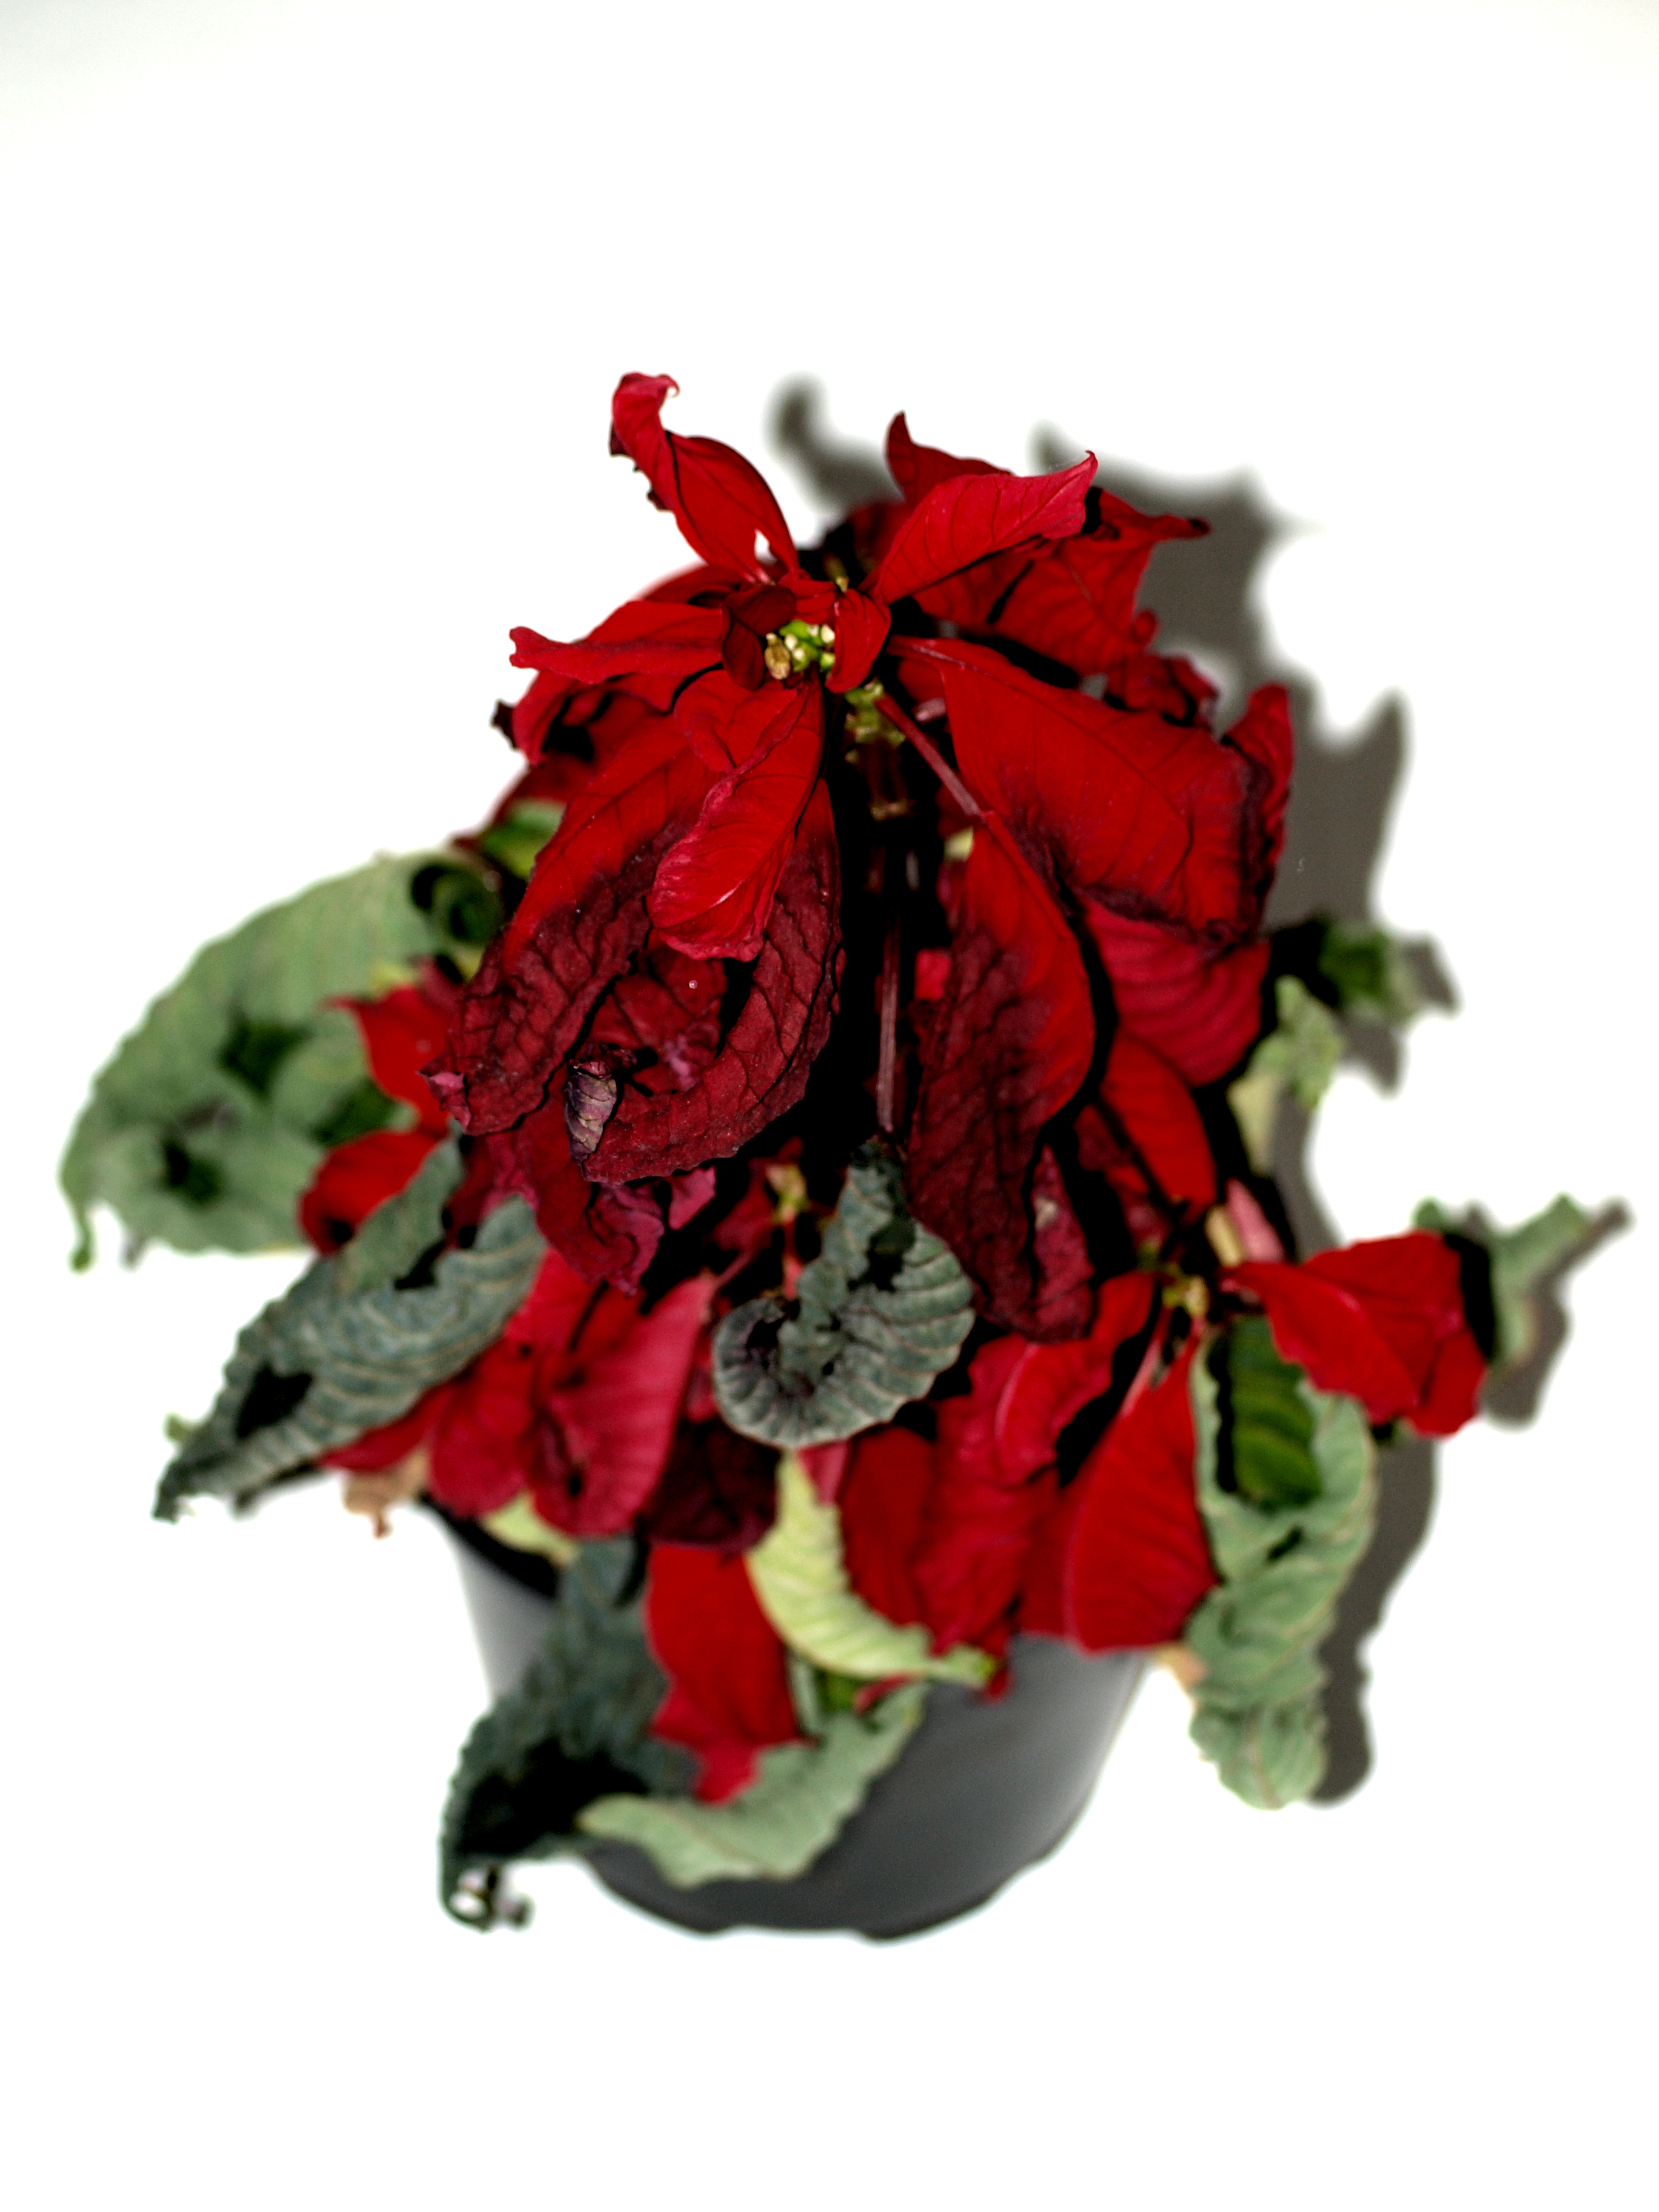 Free photo: Almost dead flower - rose, roses, plant - Non-Commercial ...